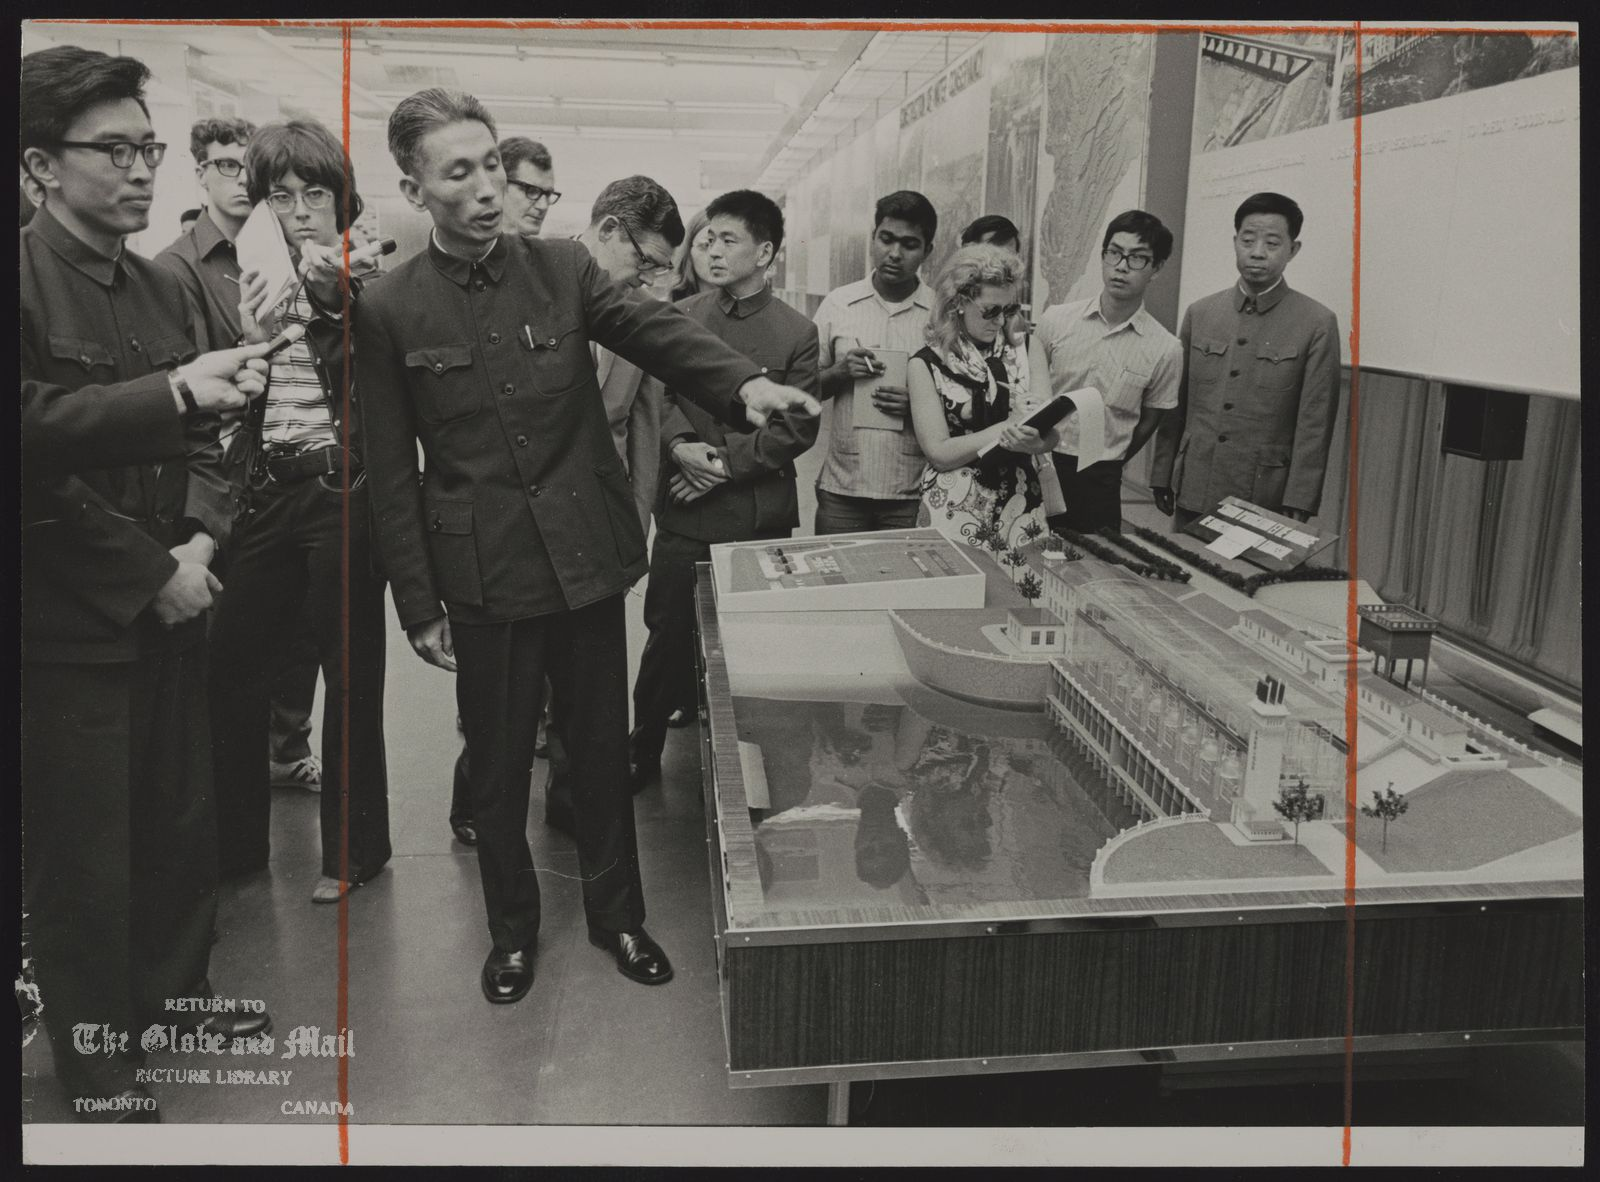 The notes transcribed from the back of this photograph are as follows: CANADIAN NATIONAL EXHIBITION Chinese Pavilion (Mr. Liu, interpreter, and Mr. Lu, deputy head of the exhibition delegation, looking at a model of a pumping station.)